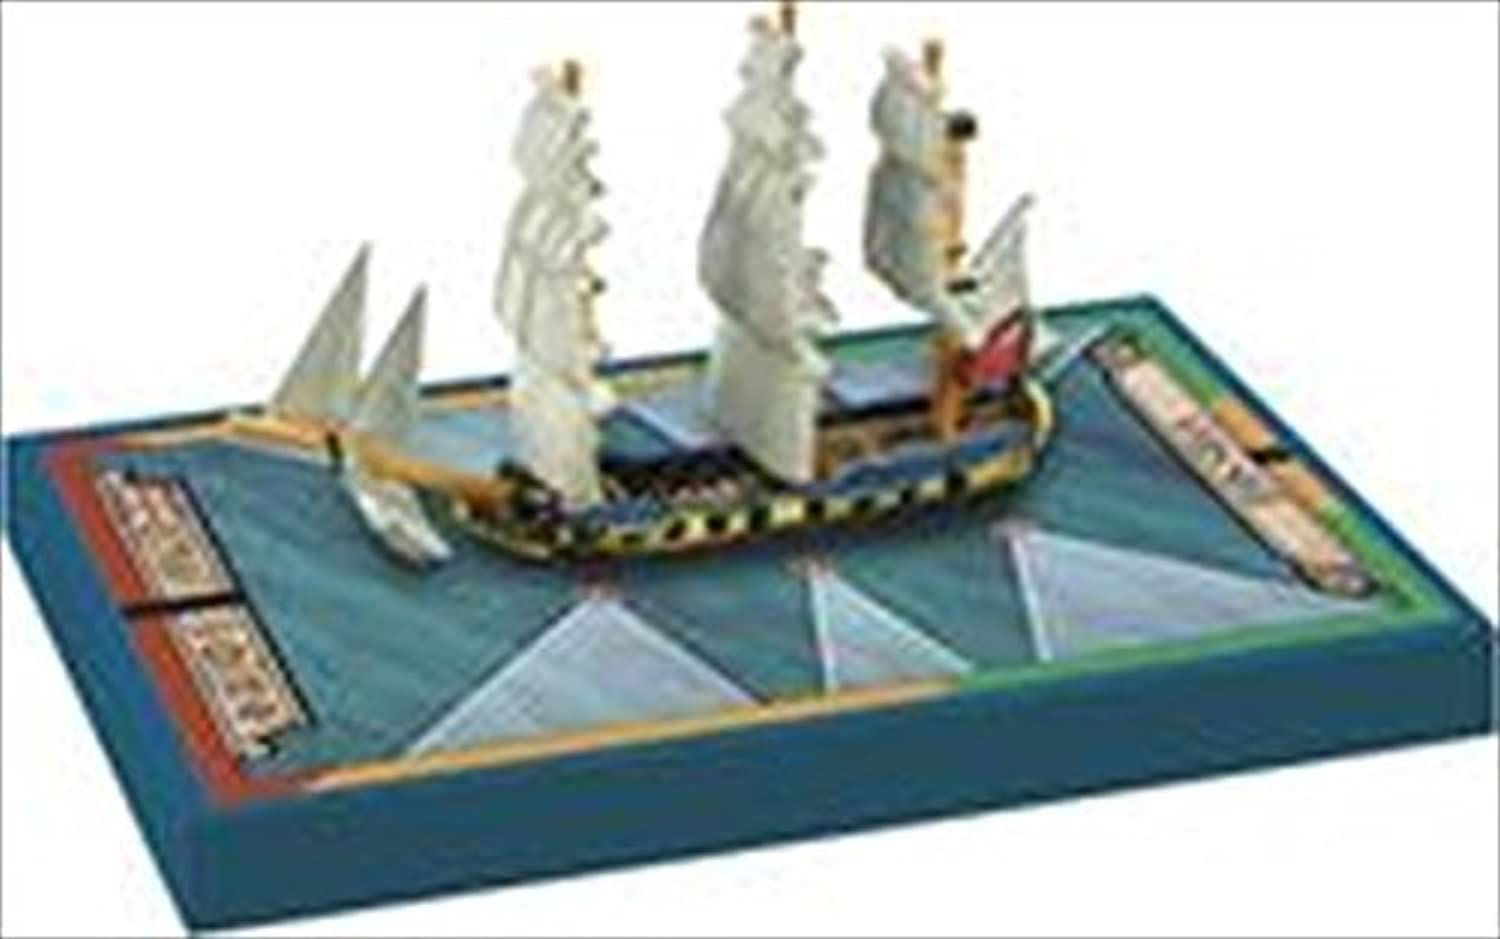 Sails of Glory Napoleonic Wars Miniature  HMS Swan 1767 by Ares Games